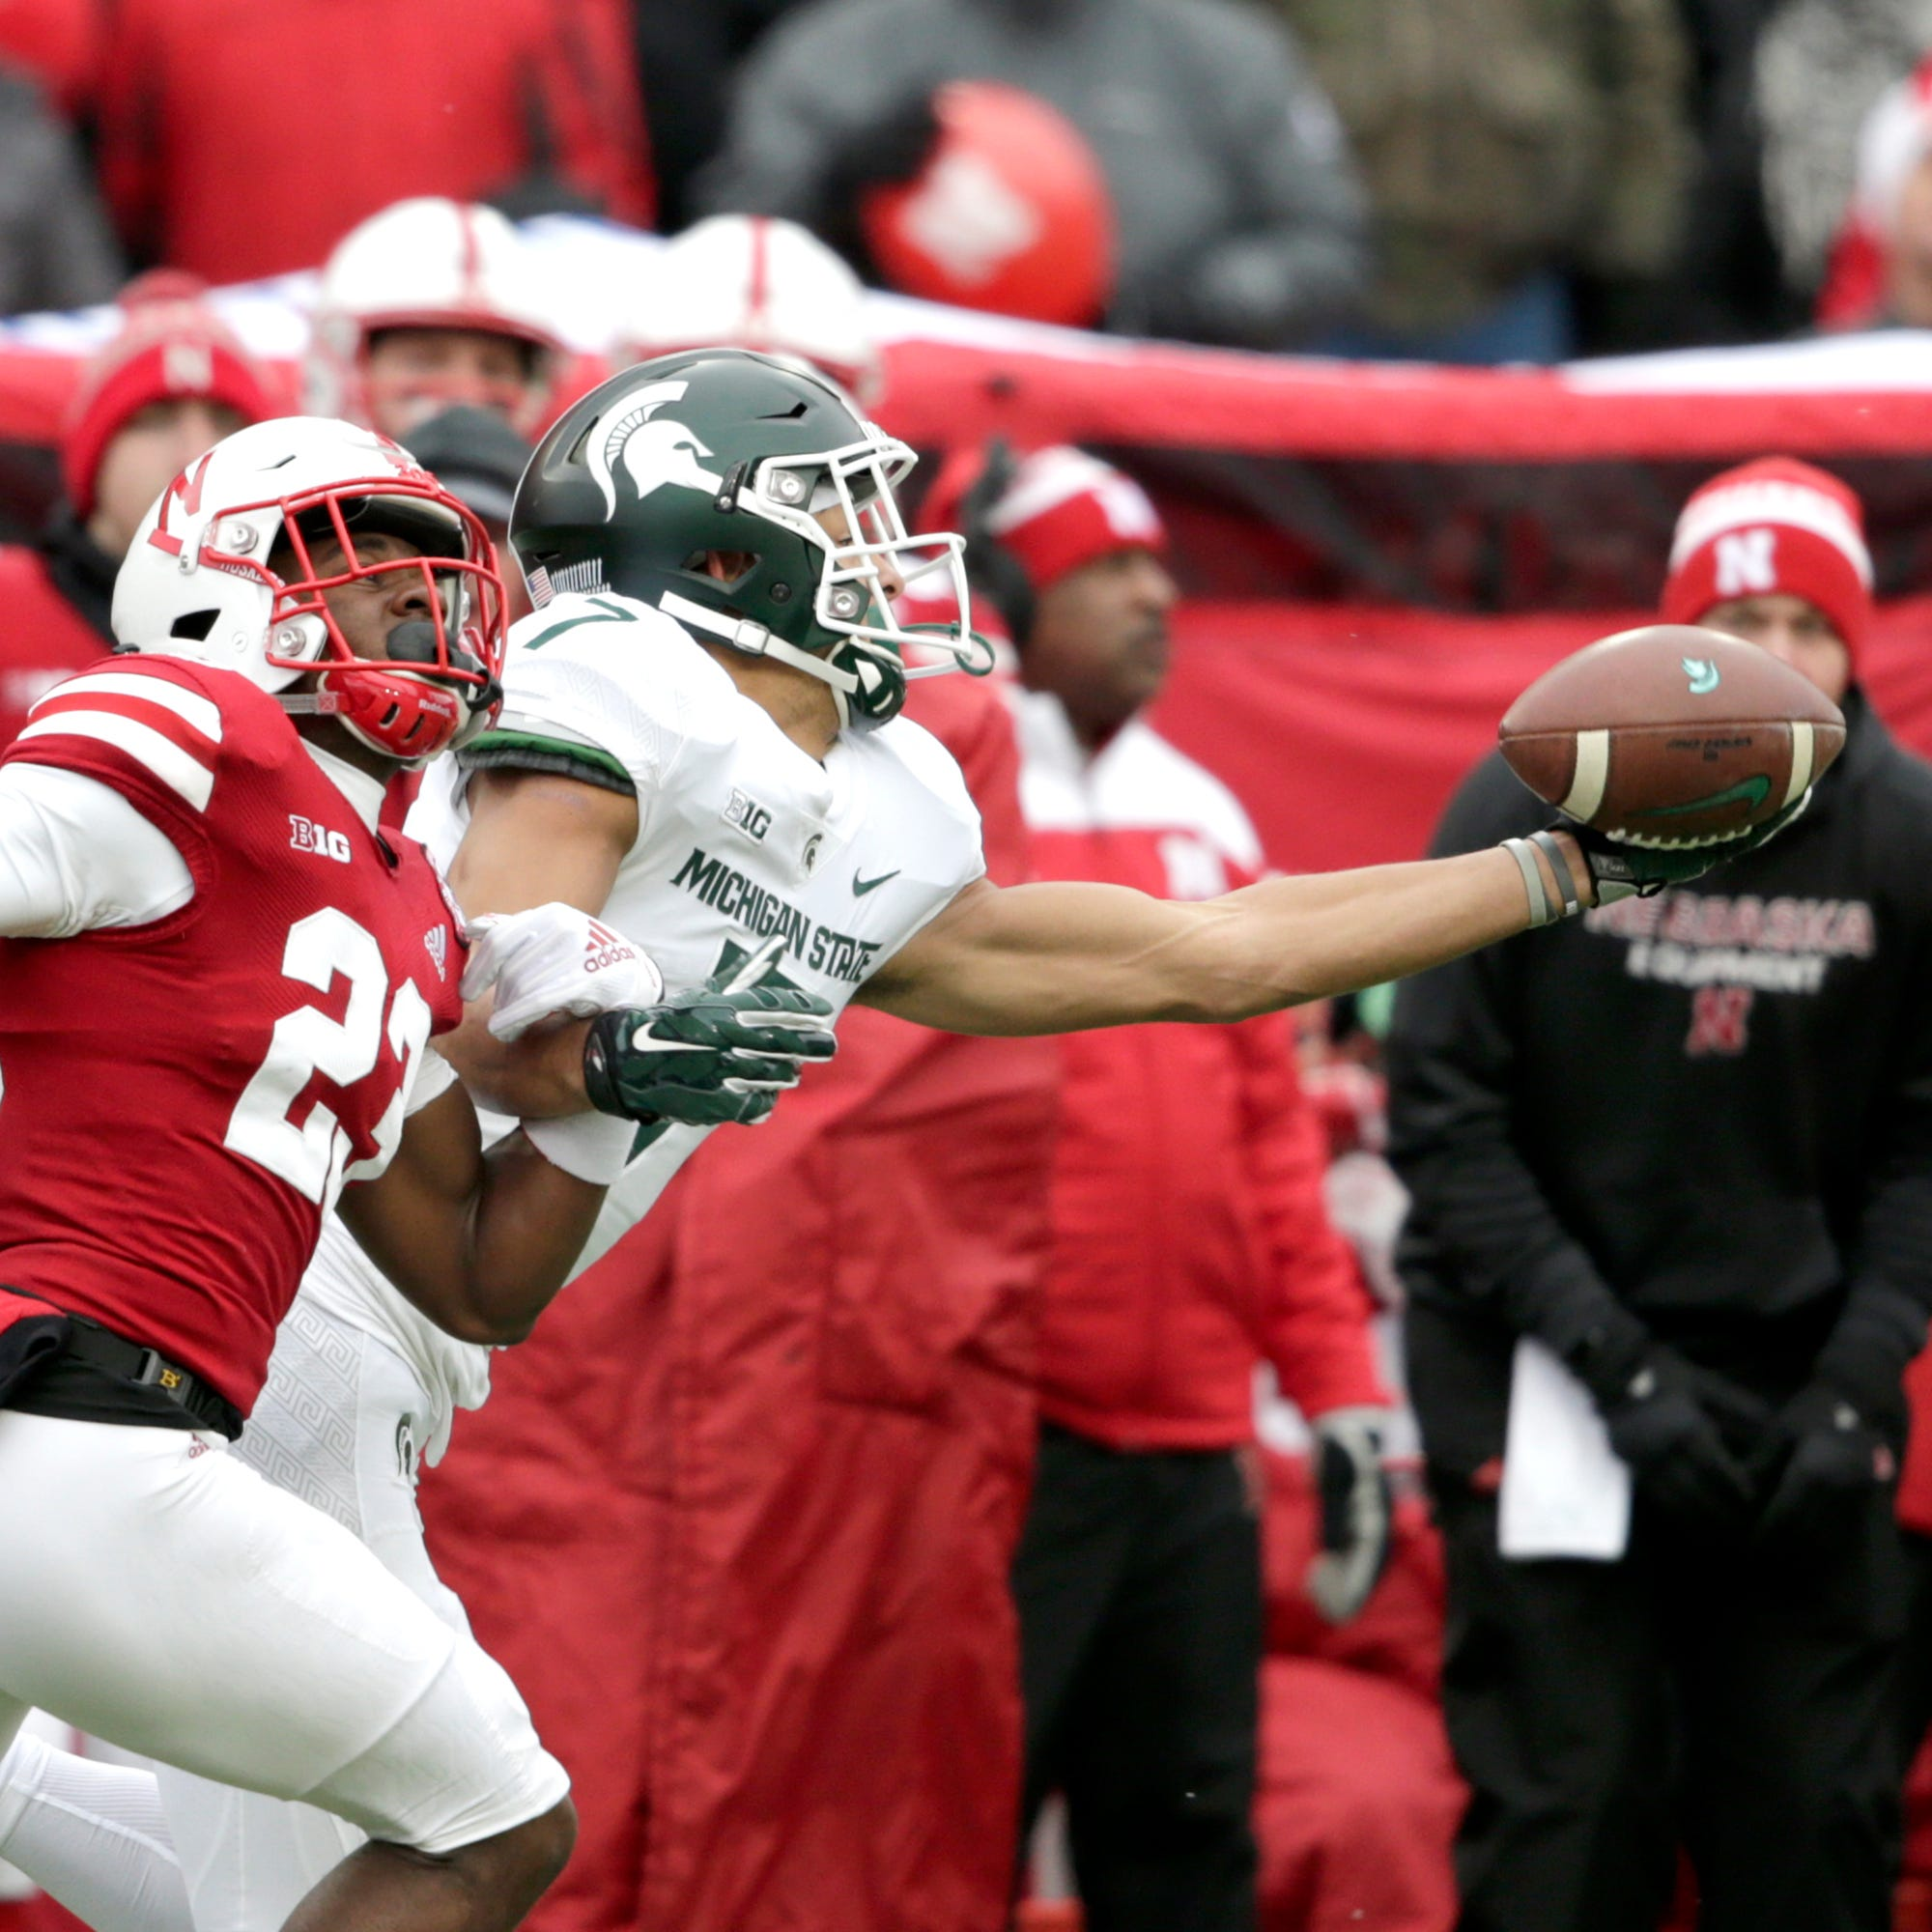 MSU's offense a no-show in loss to Nebraska